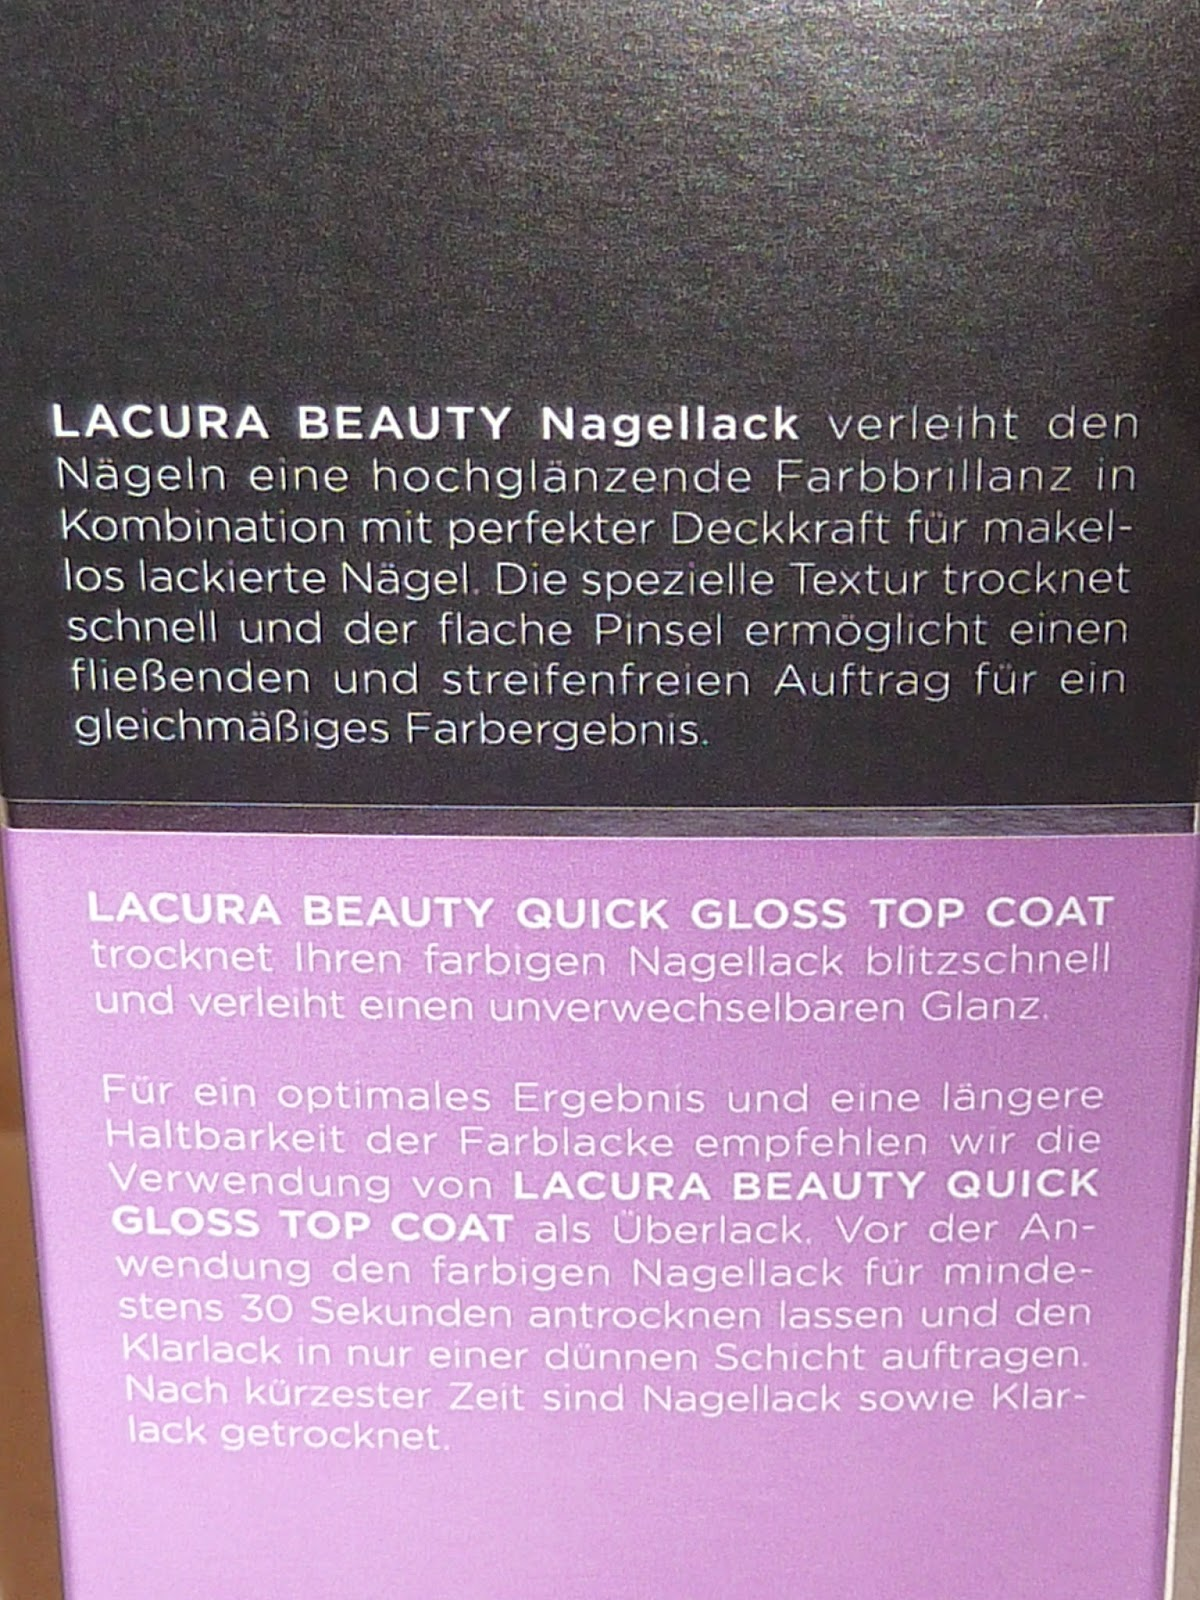 meine kosmetik lacura quick gloss top coat. Black Bedroom Furniture Sets. Home Design Ideas